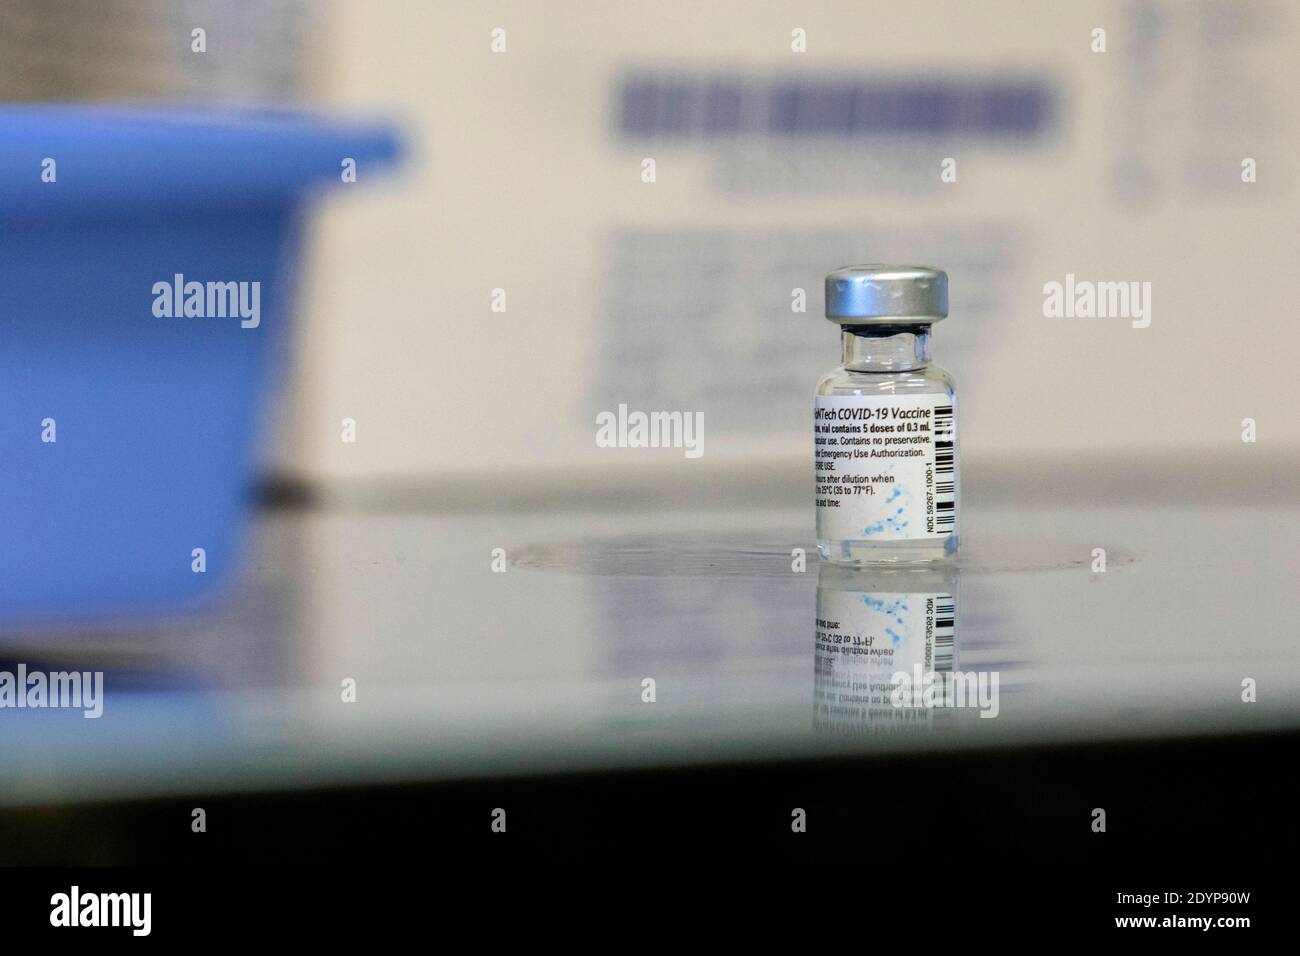 A vial of the vaccine produced by Pfizer / BioNTech at the Santa Maria hospital.Vaccination plans against Covid19 have started across Europe and health professionals at Santa Maria hospital are the first to receive the vaccine. Stock Photo